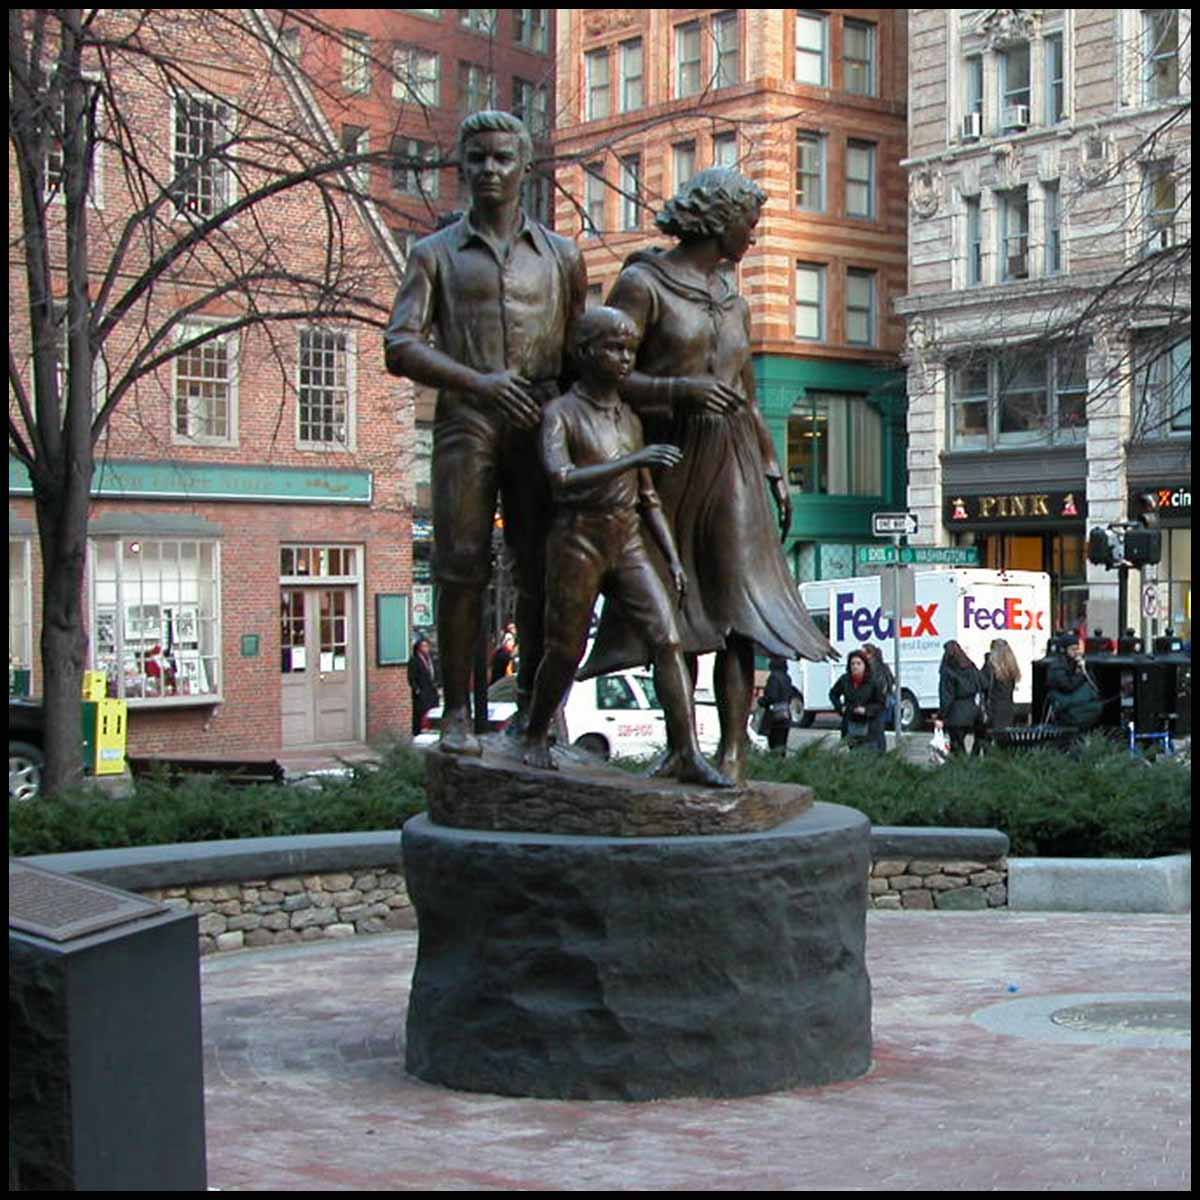 photo of bronze-colored sculpture of male, female, and child in movement on round stone base in hardscaped plaza with buildings and streets surrounding it